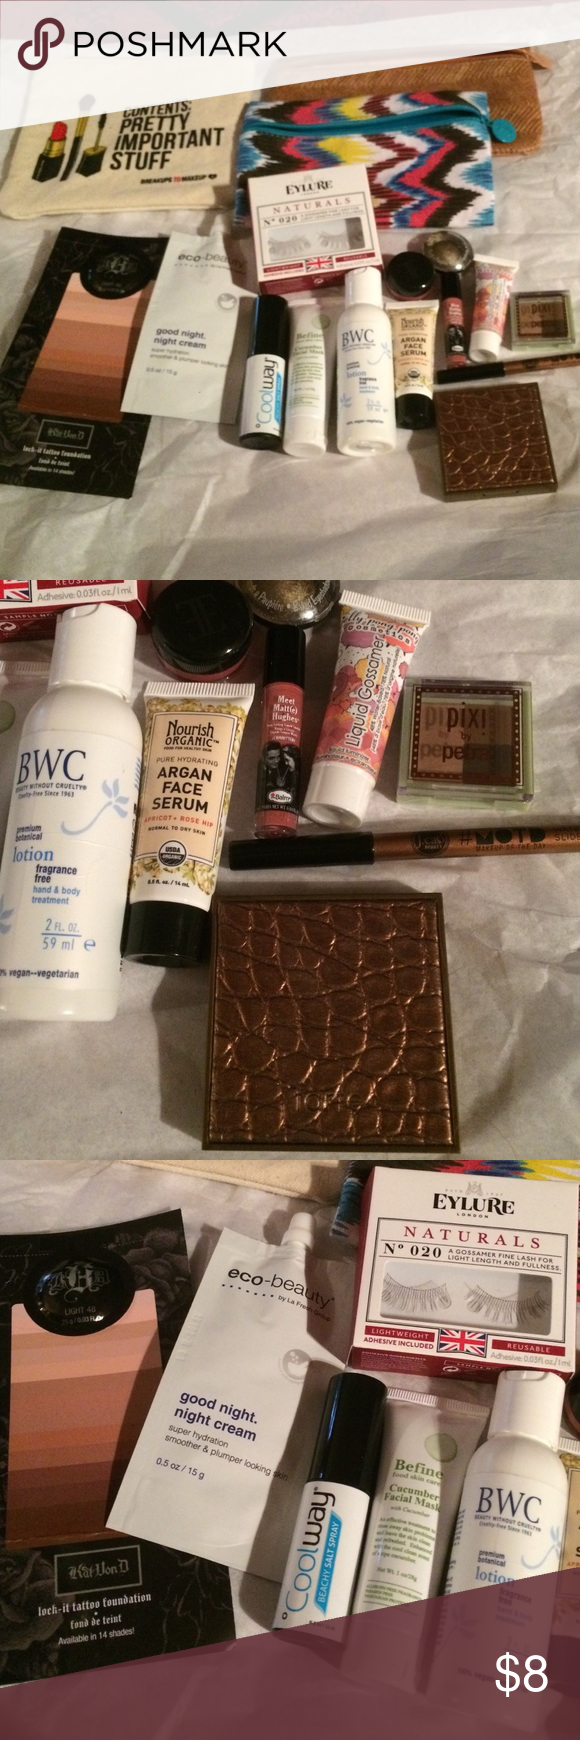 Lot of random makeup/beauty products Never opened/used